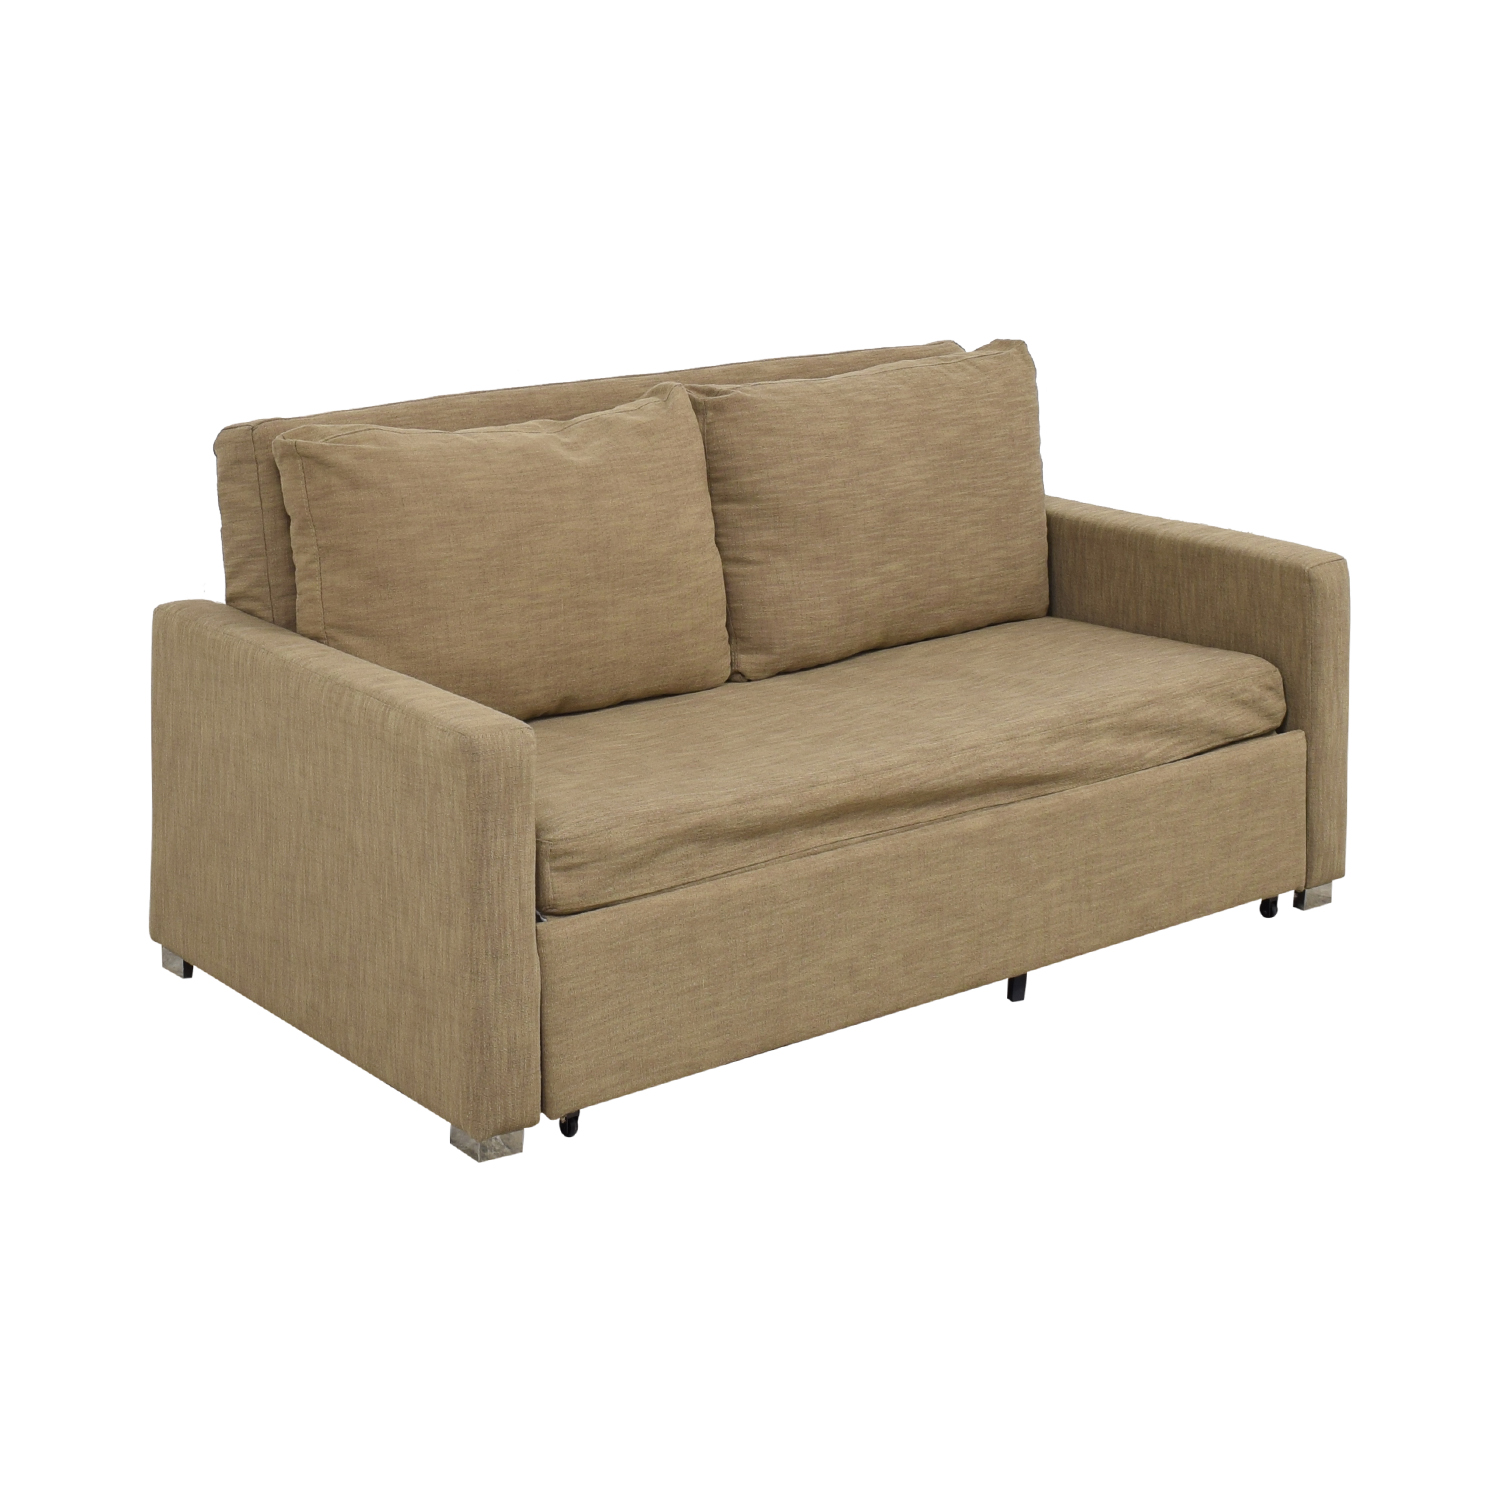 Expand Furniture Harmony Queen Sleeper Sofa pa